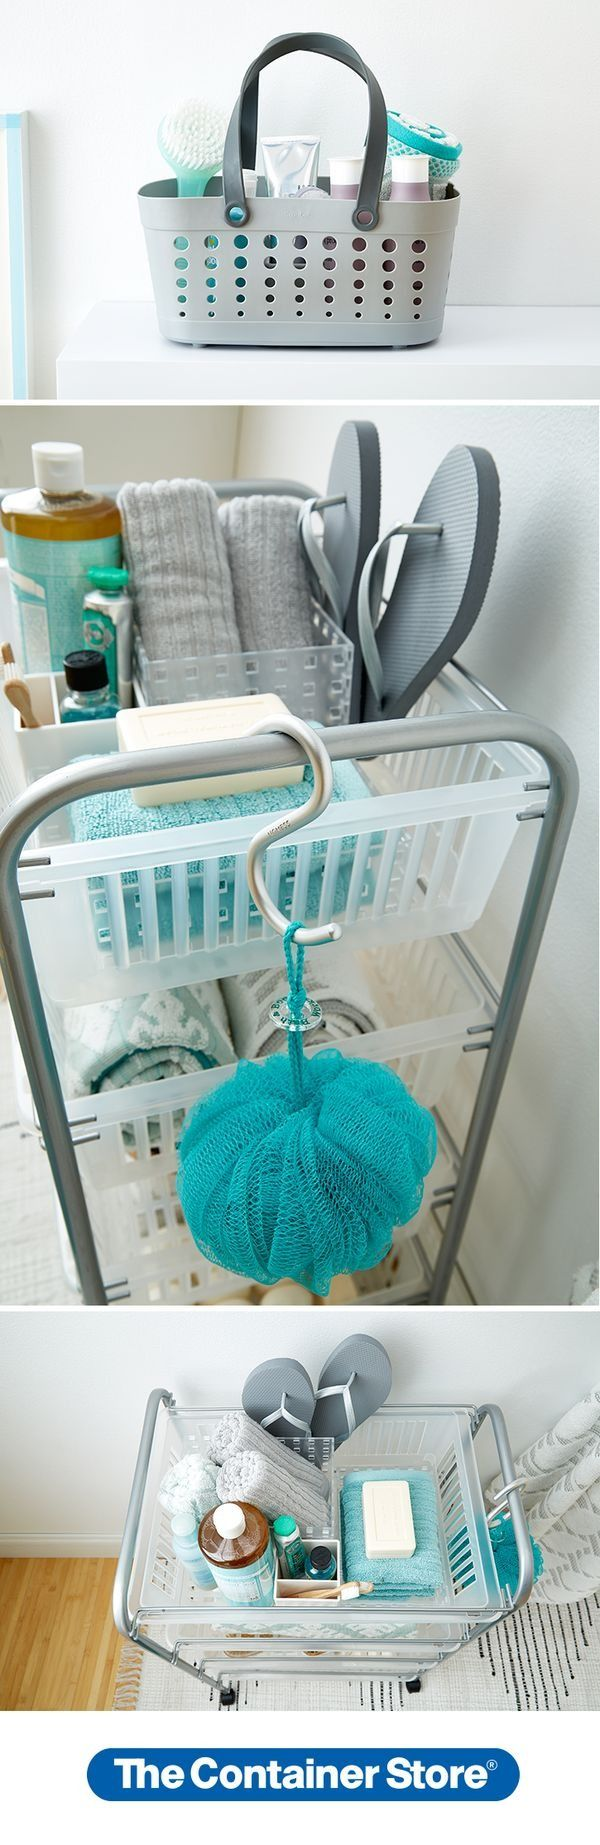 Don't let the community bathroom scare you! Set up all your bath essentials like flip-flops, towels, and toiletries on our Jumbo 4-Drawer Utility Cart. Our Casabella Flexible Shower Basket makes it easy to take shampoo, soap, razor and more to the shower down the hall.